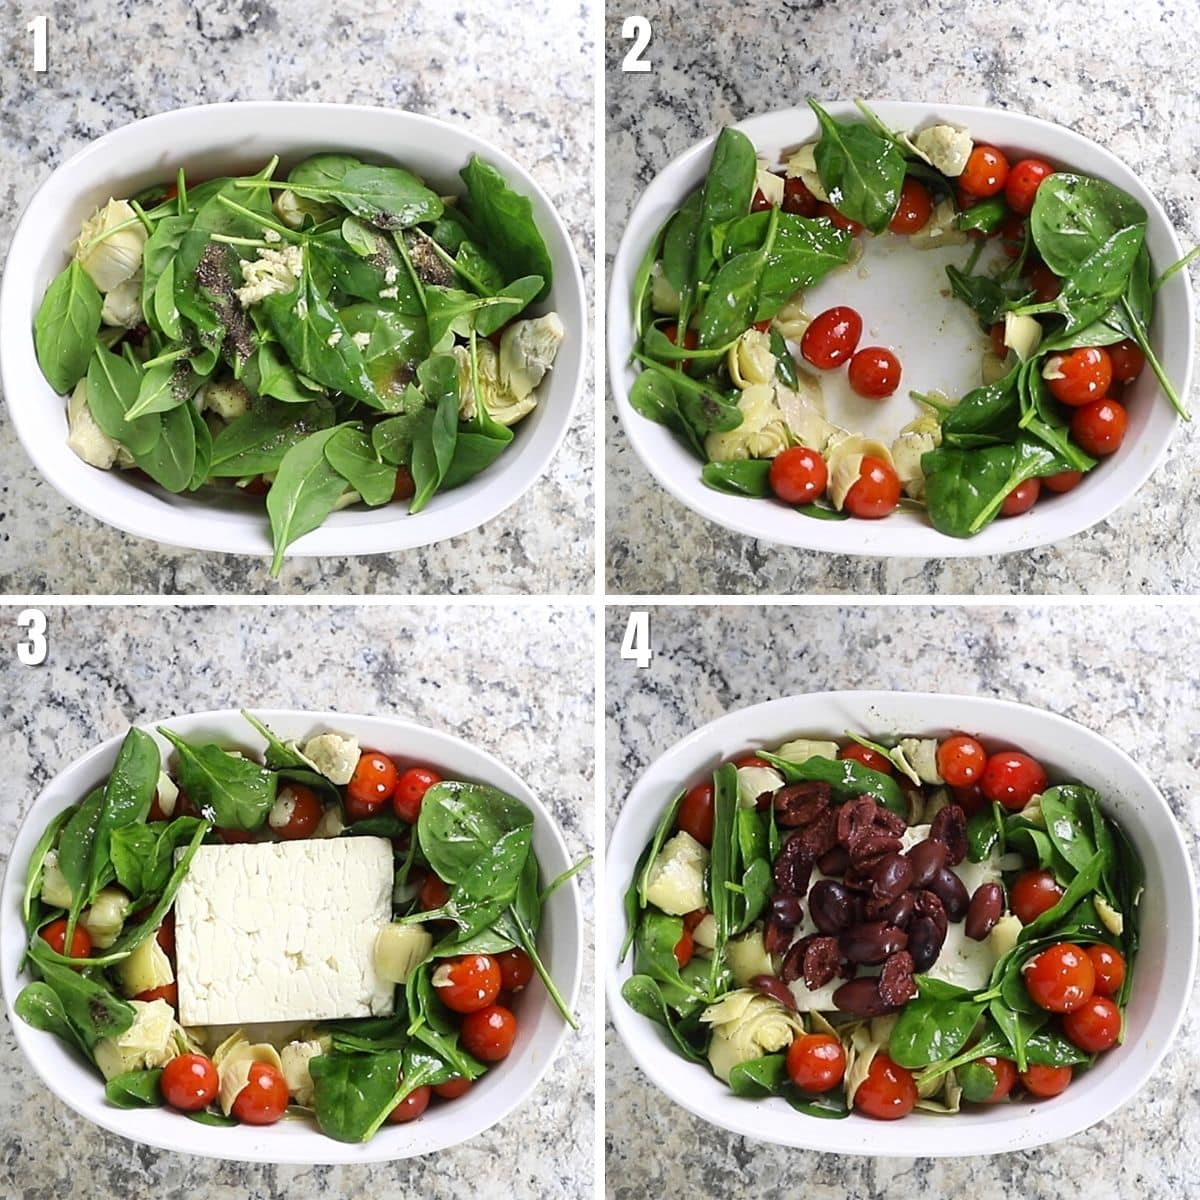 A collage of four images showing how to make Mediterranean baked feta dip.